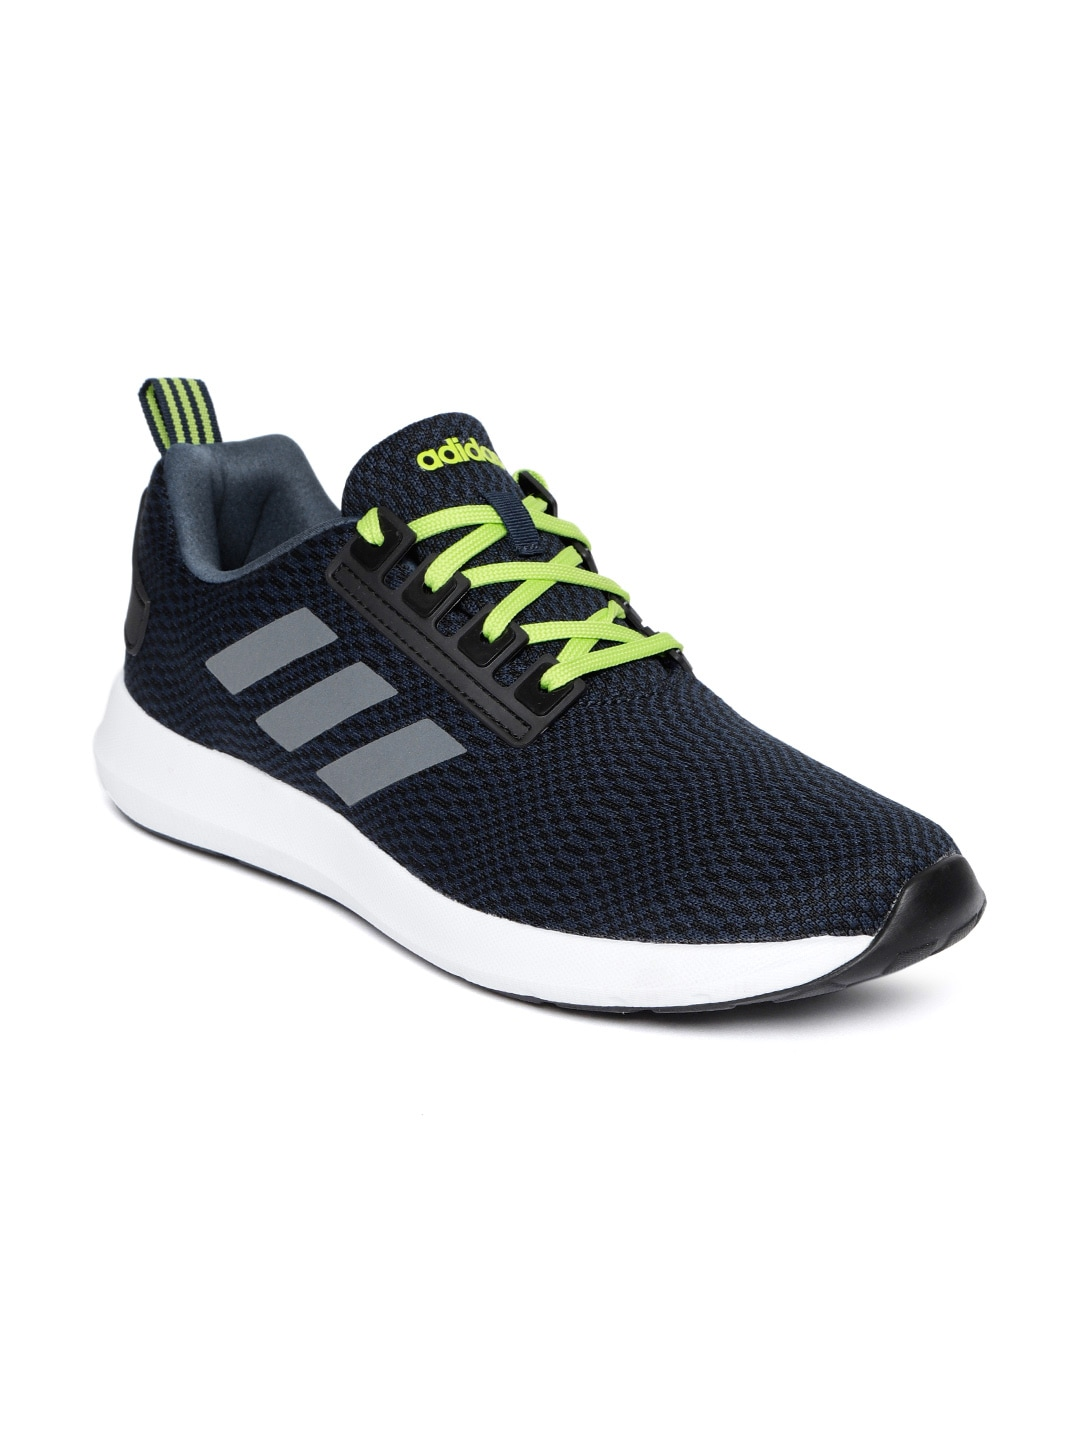 Adidas Astrolite Navy Blue Running Shoes for Men online in